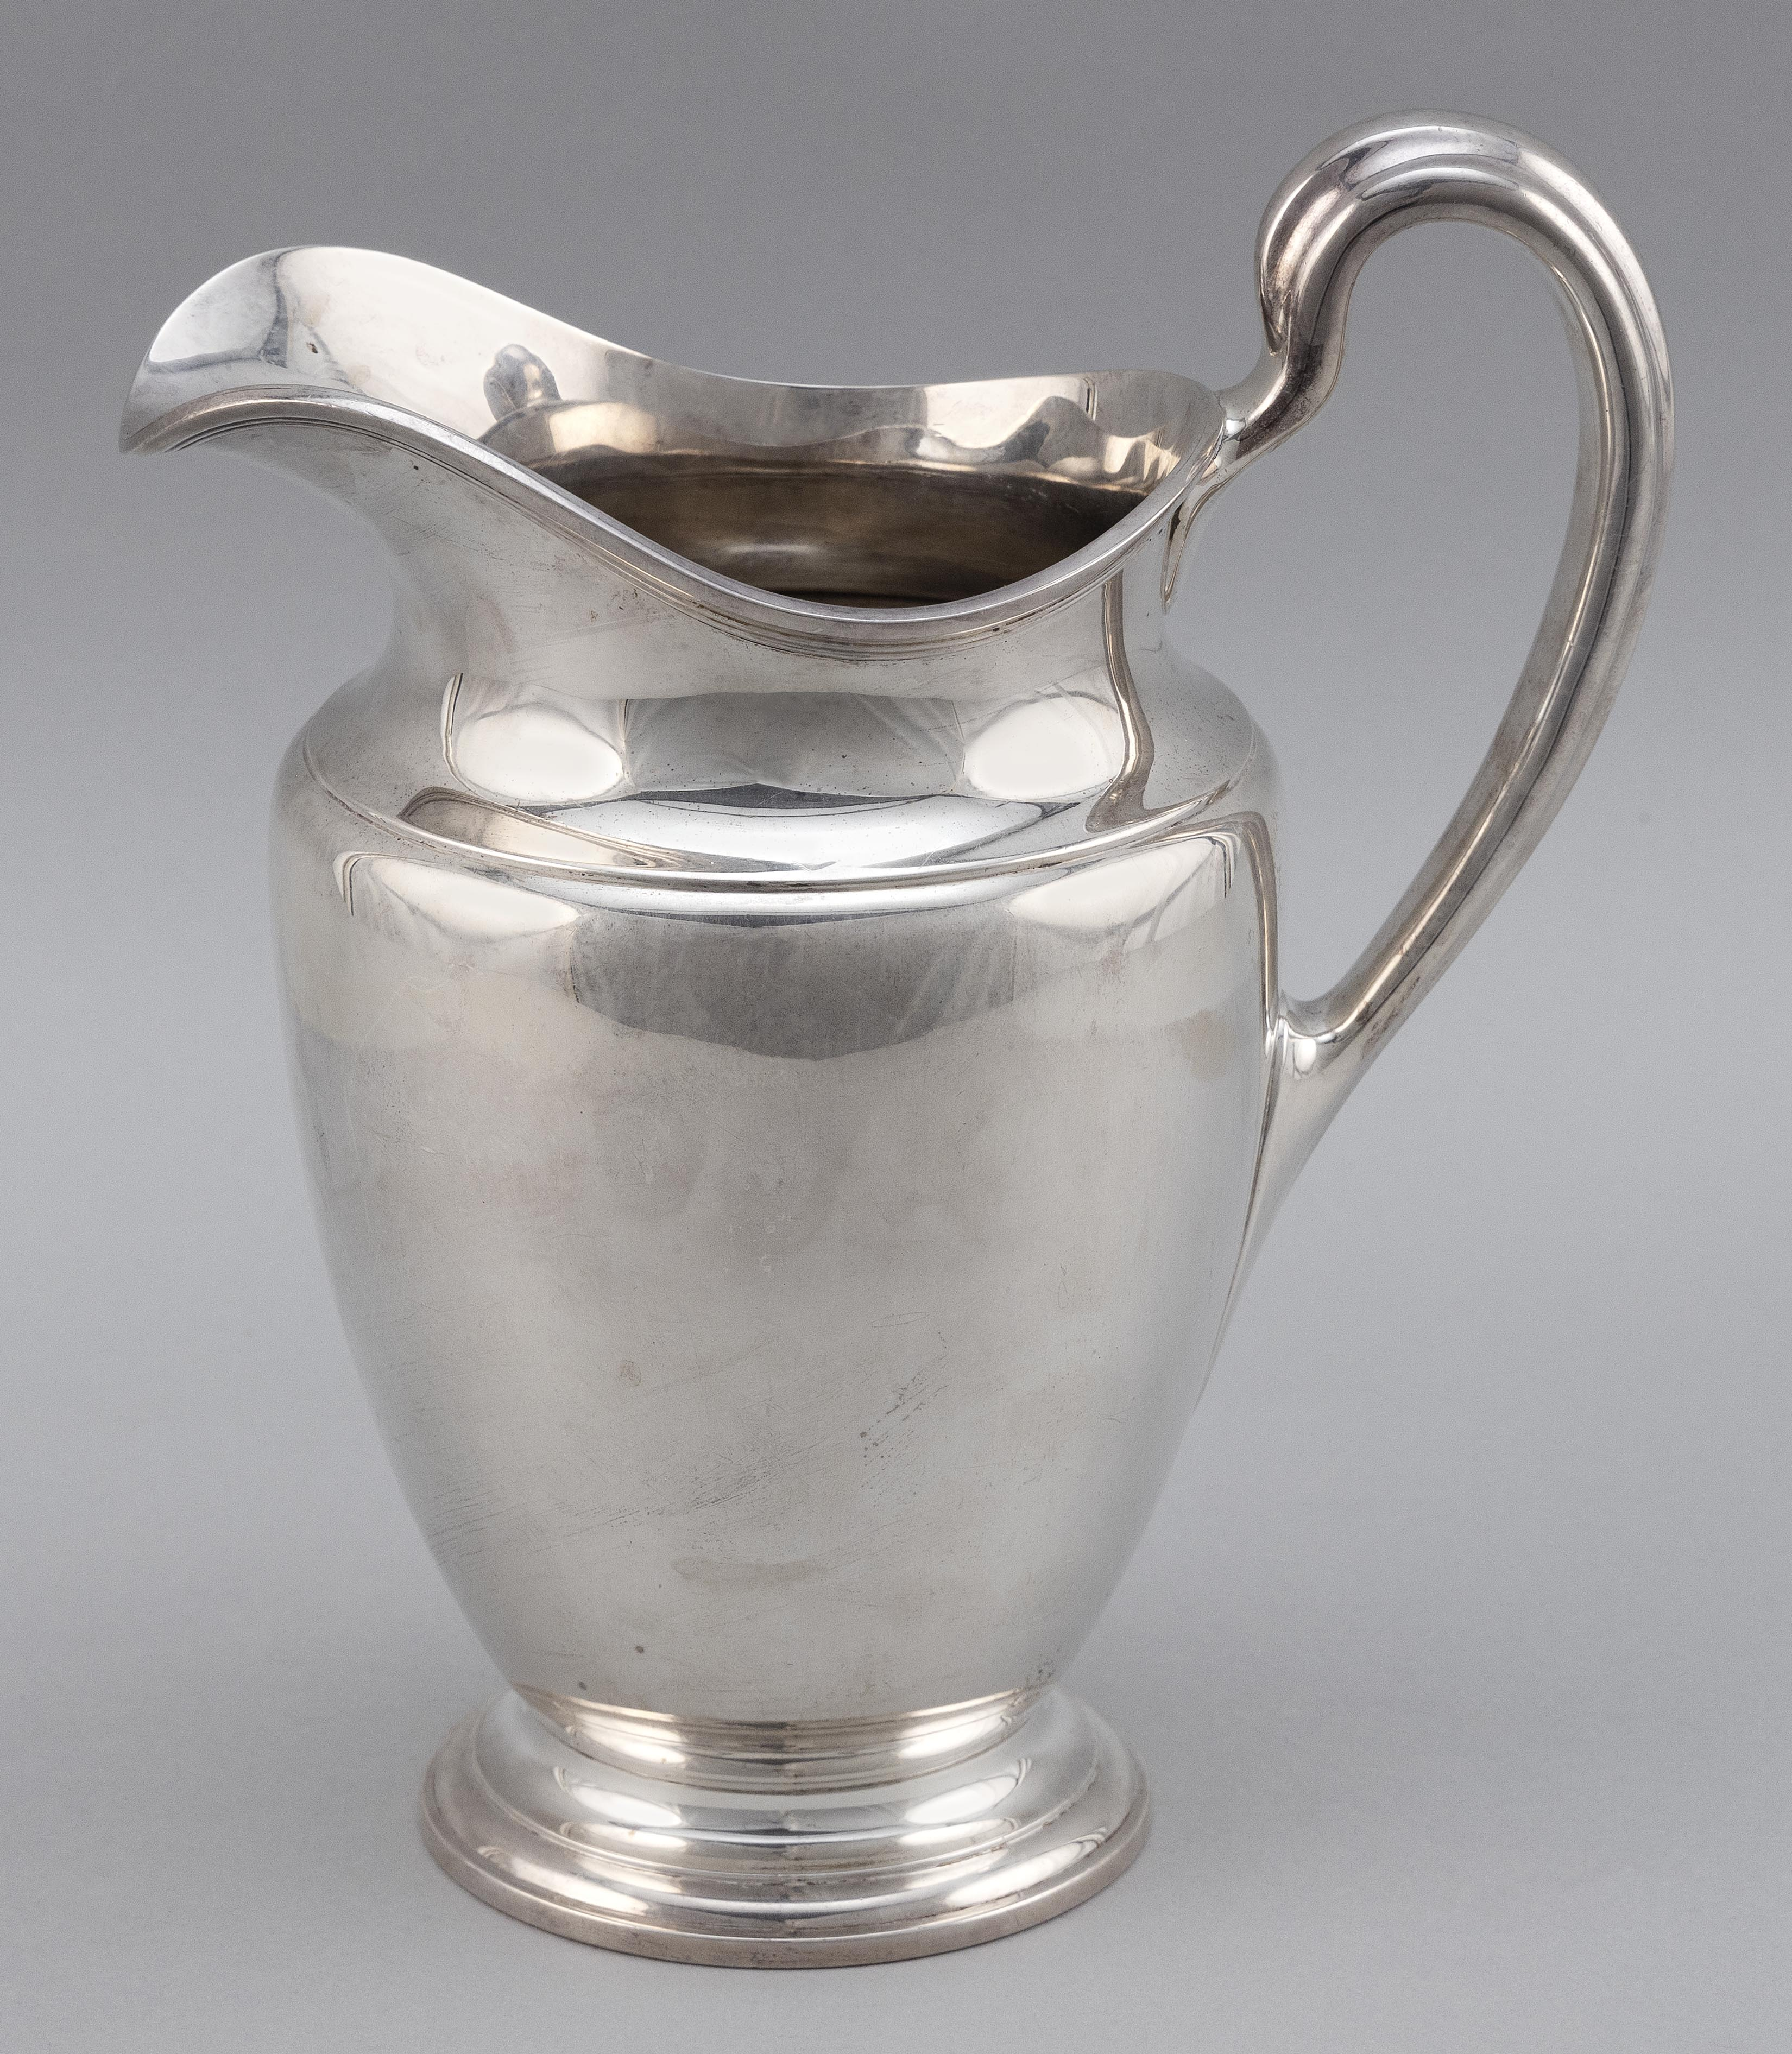 TIFFANY & CO. STERLING SILVER WATER PITCHER New York, 1907-1947 Approx. 33.0 troy oz.